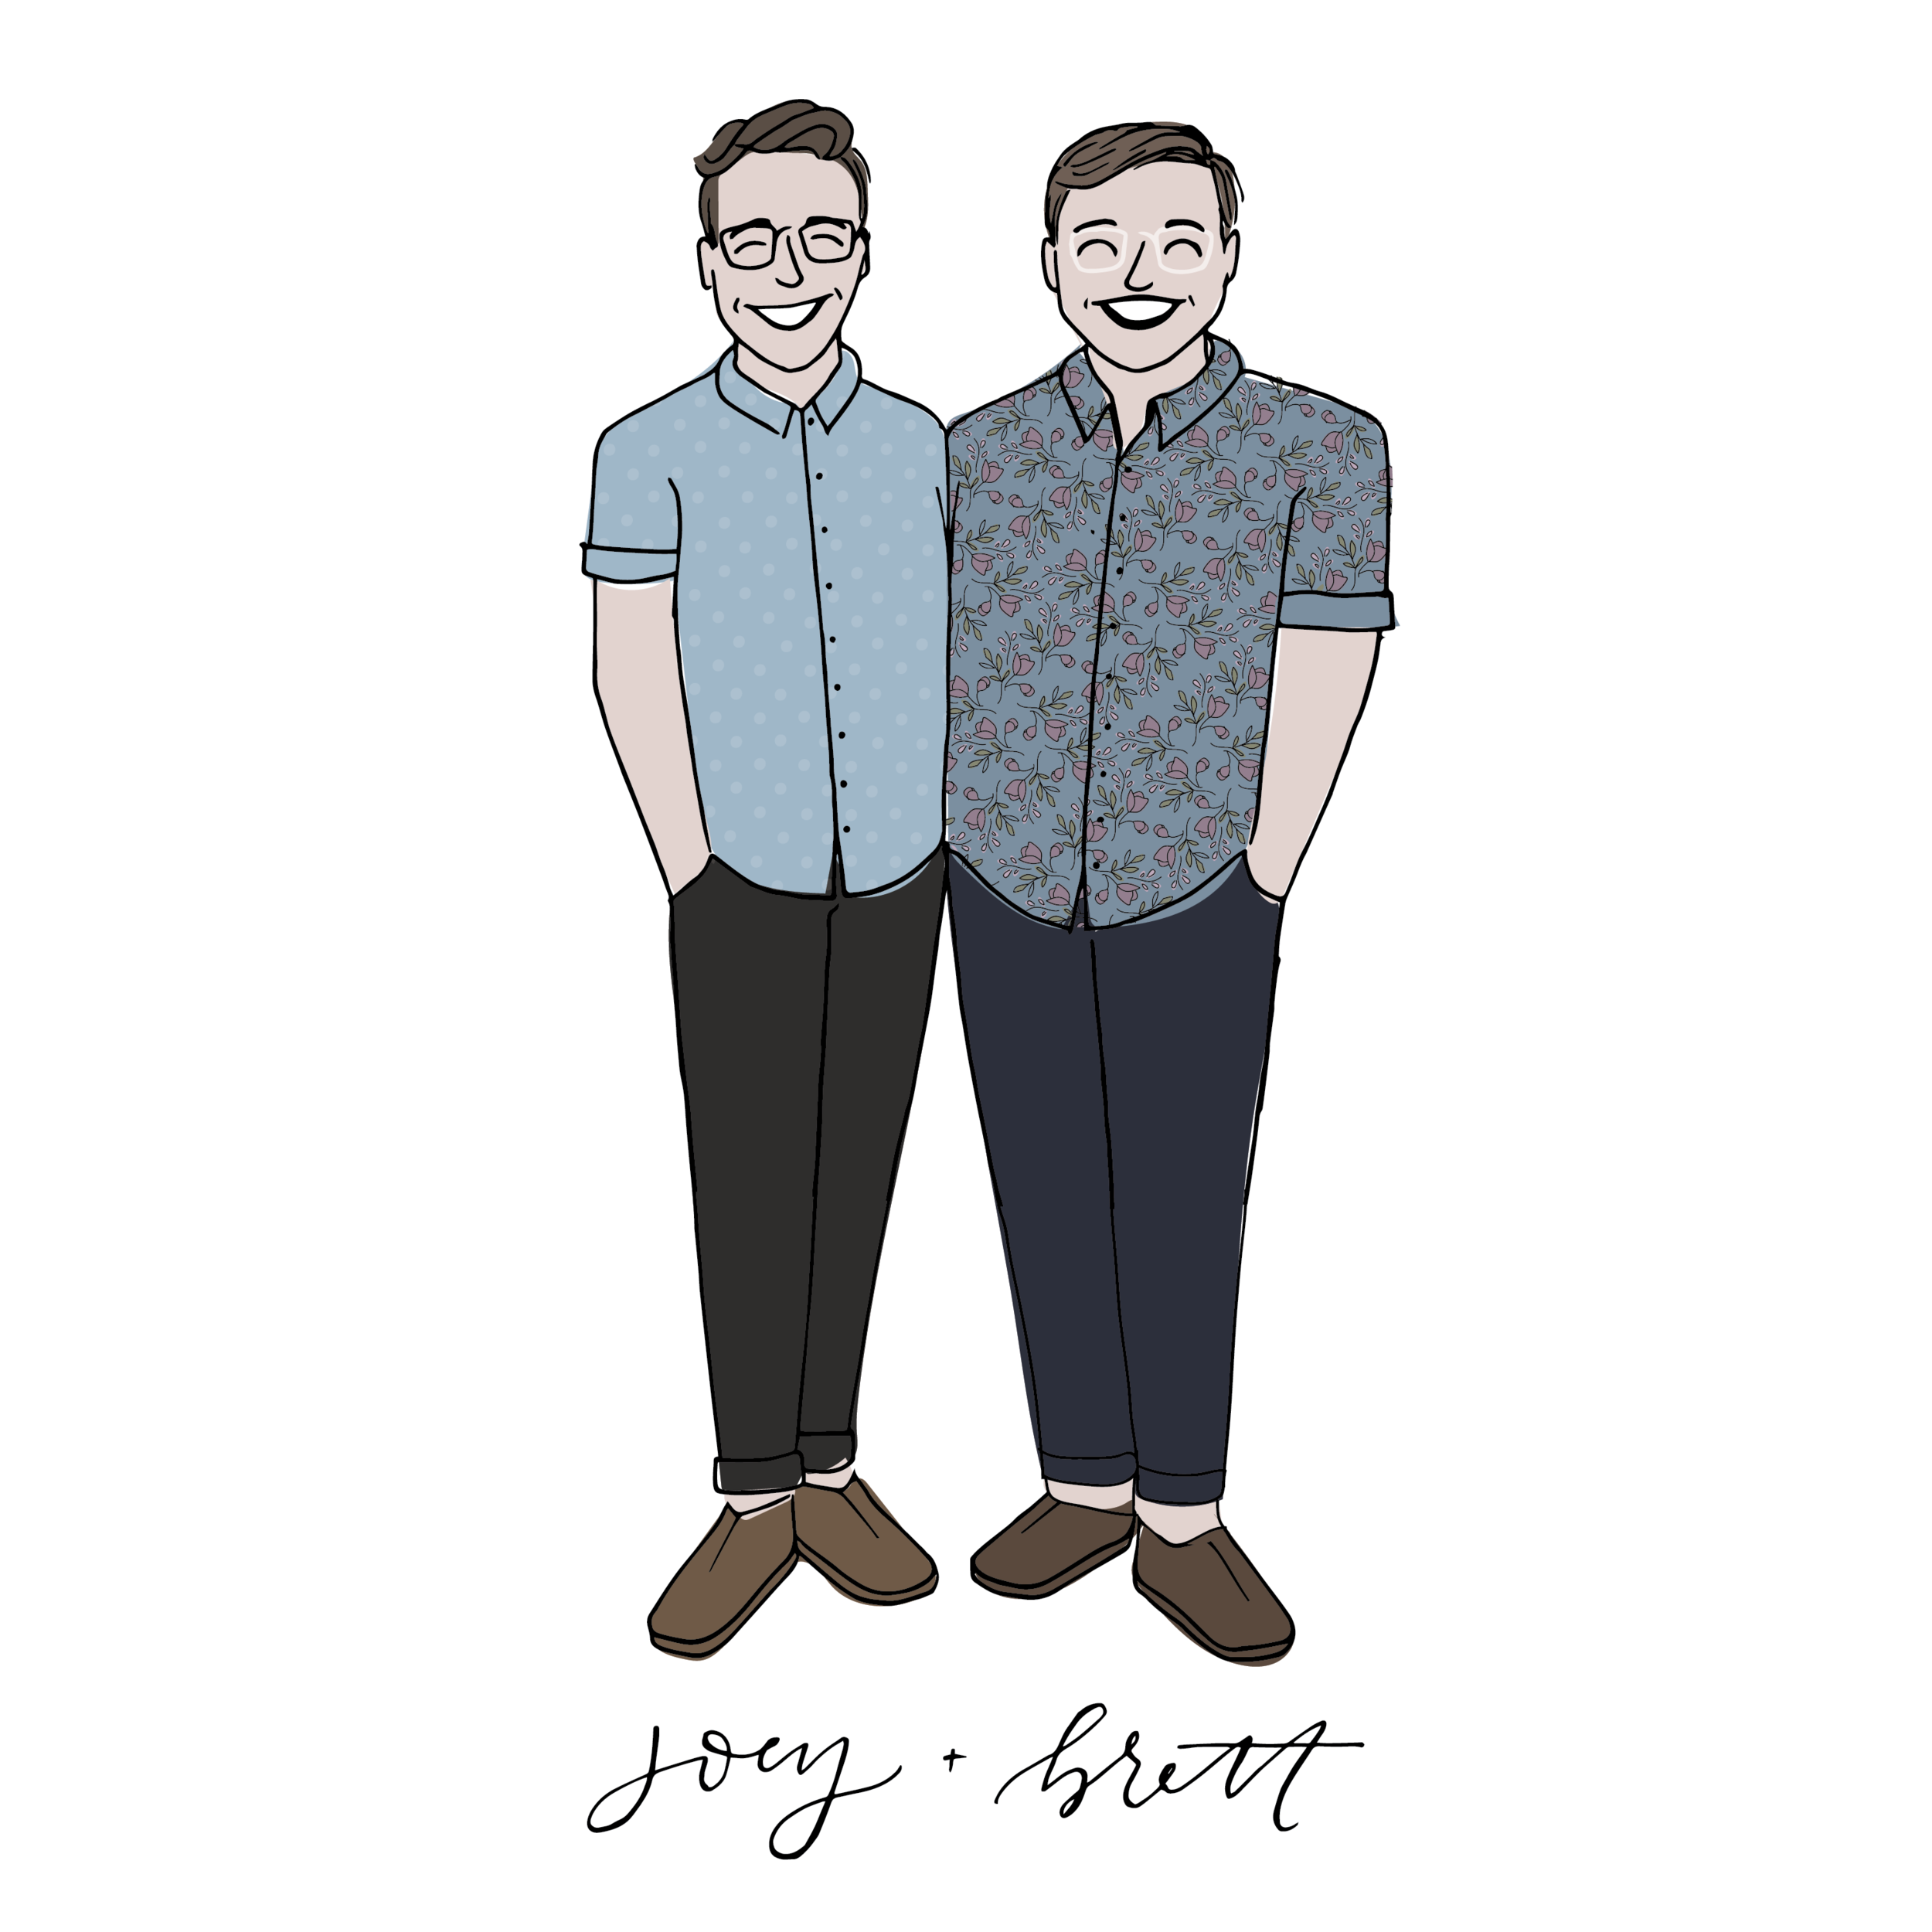 joey and brett.png